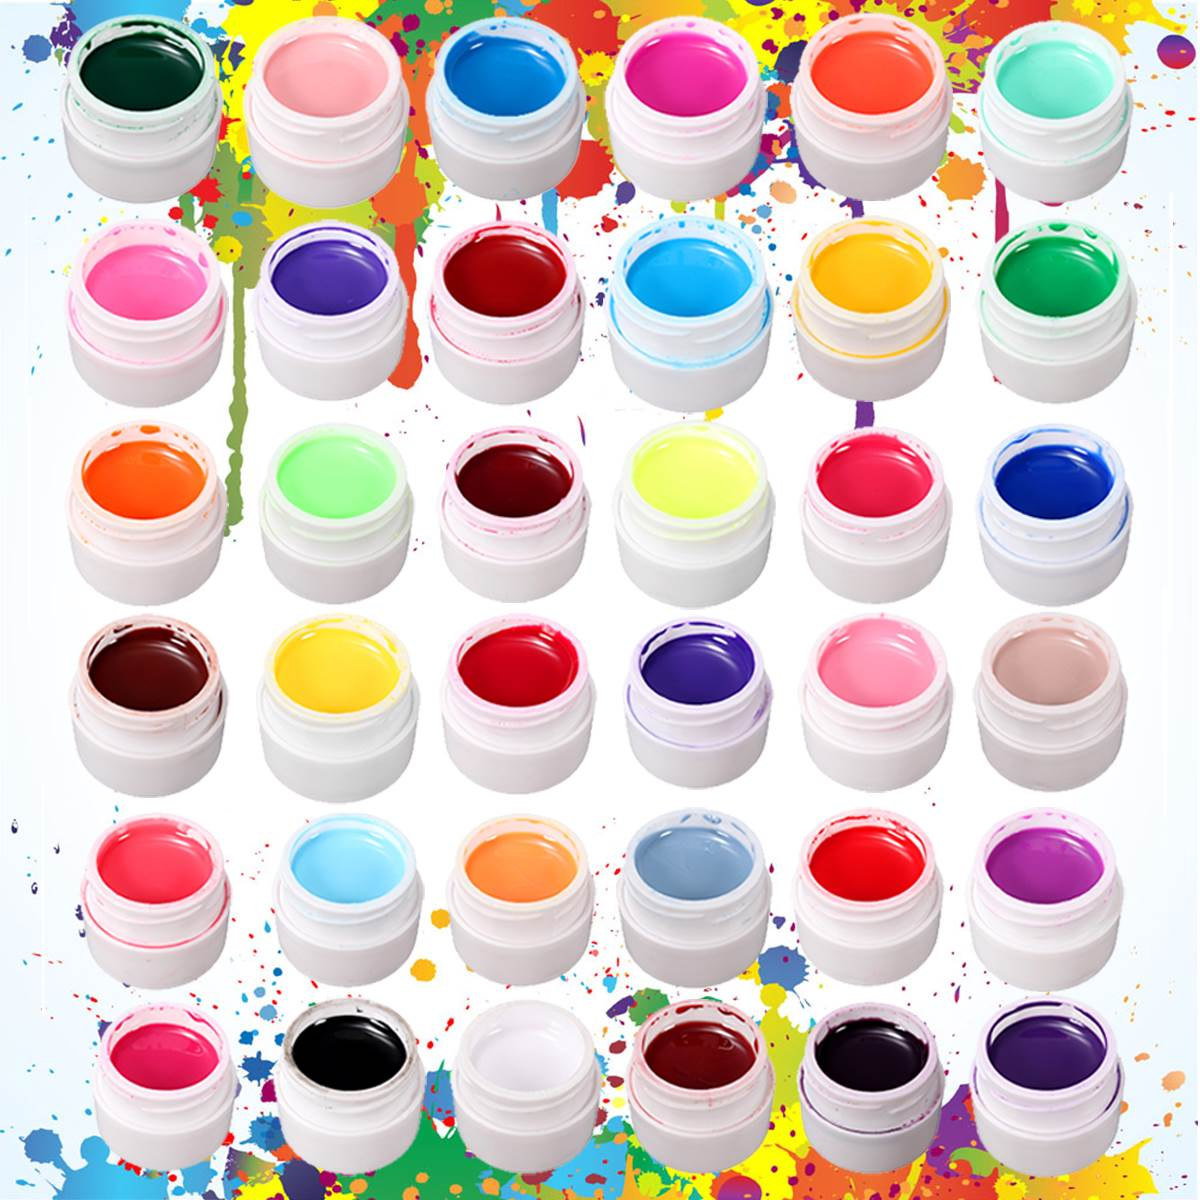 1Pot Nail Art Decor UV Gel Nails Polish Excellent Gel Manicure Tools 19 Pure Color Hot Selling(China (Mainland))